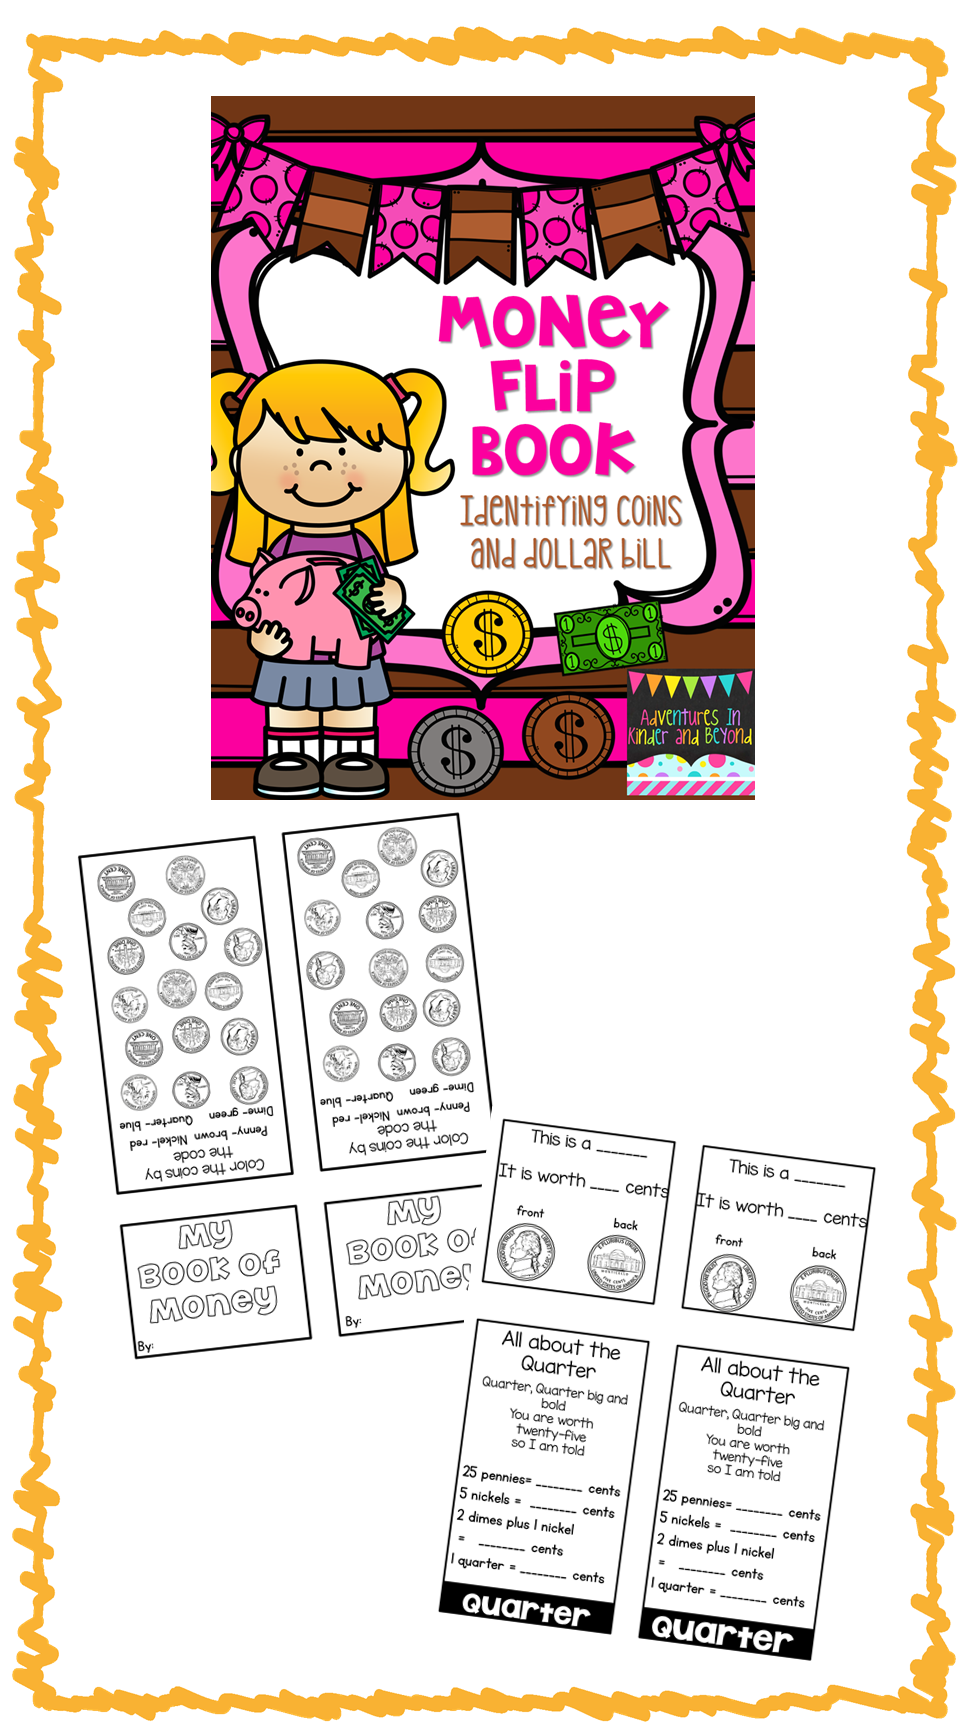 Money Flip Book Identifying Coins And Dollar